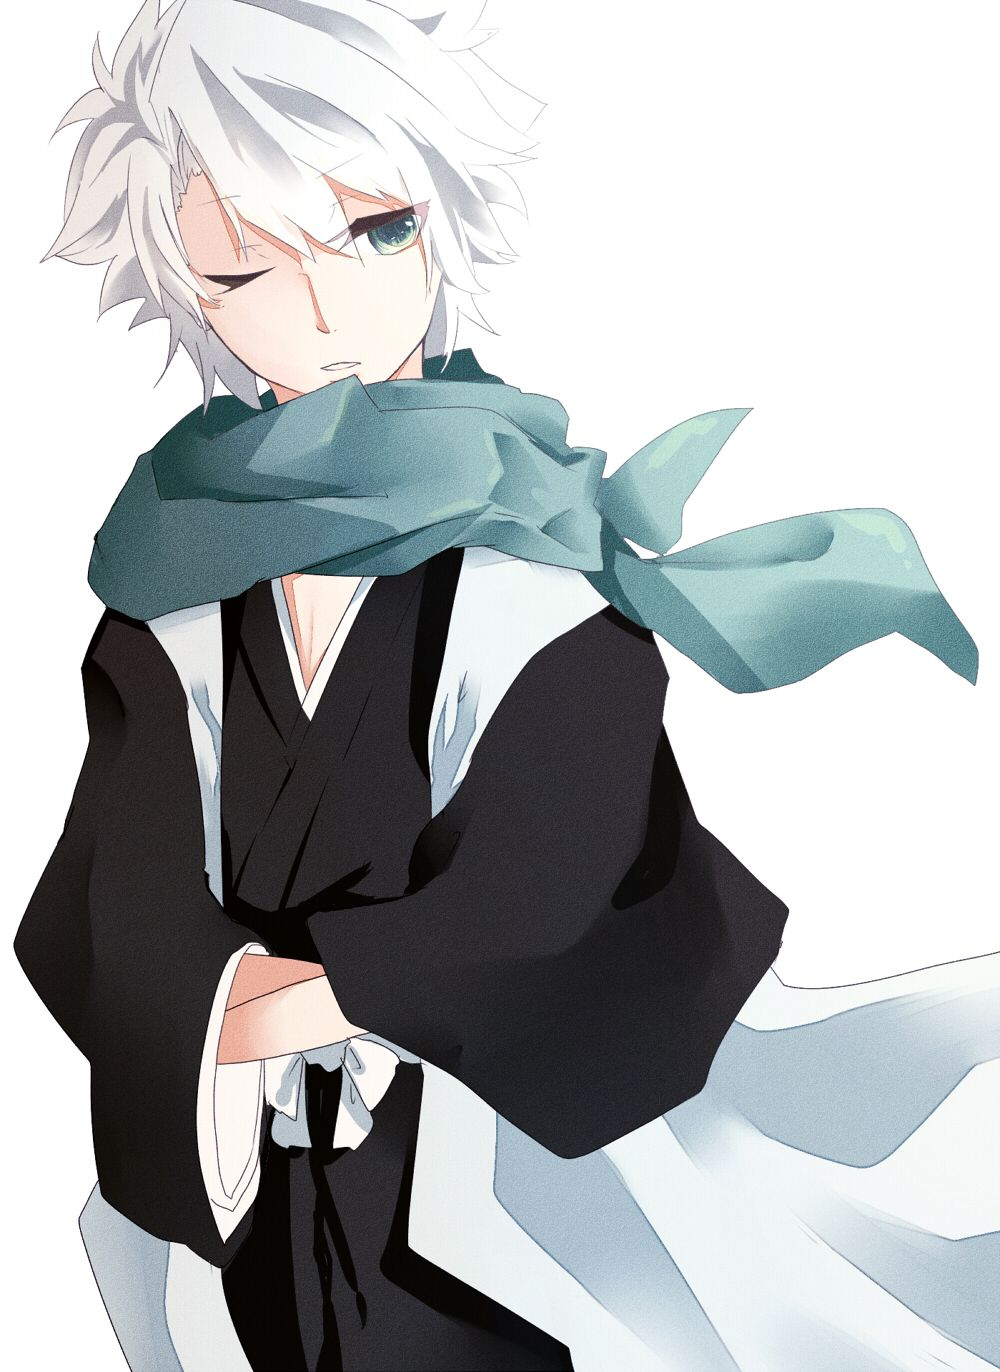 Toshiro Hitsugaya Not Just The Bleach King But Anime In General